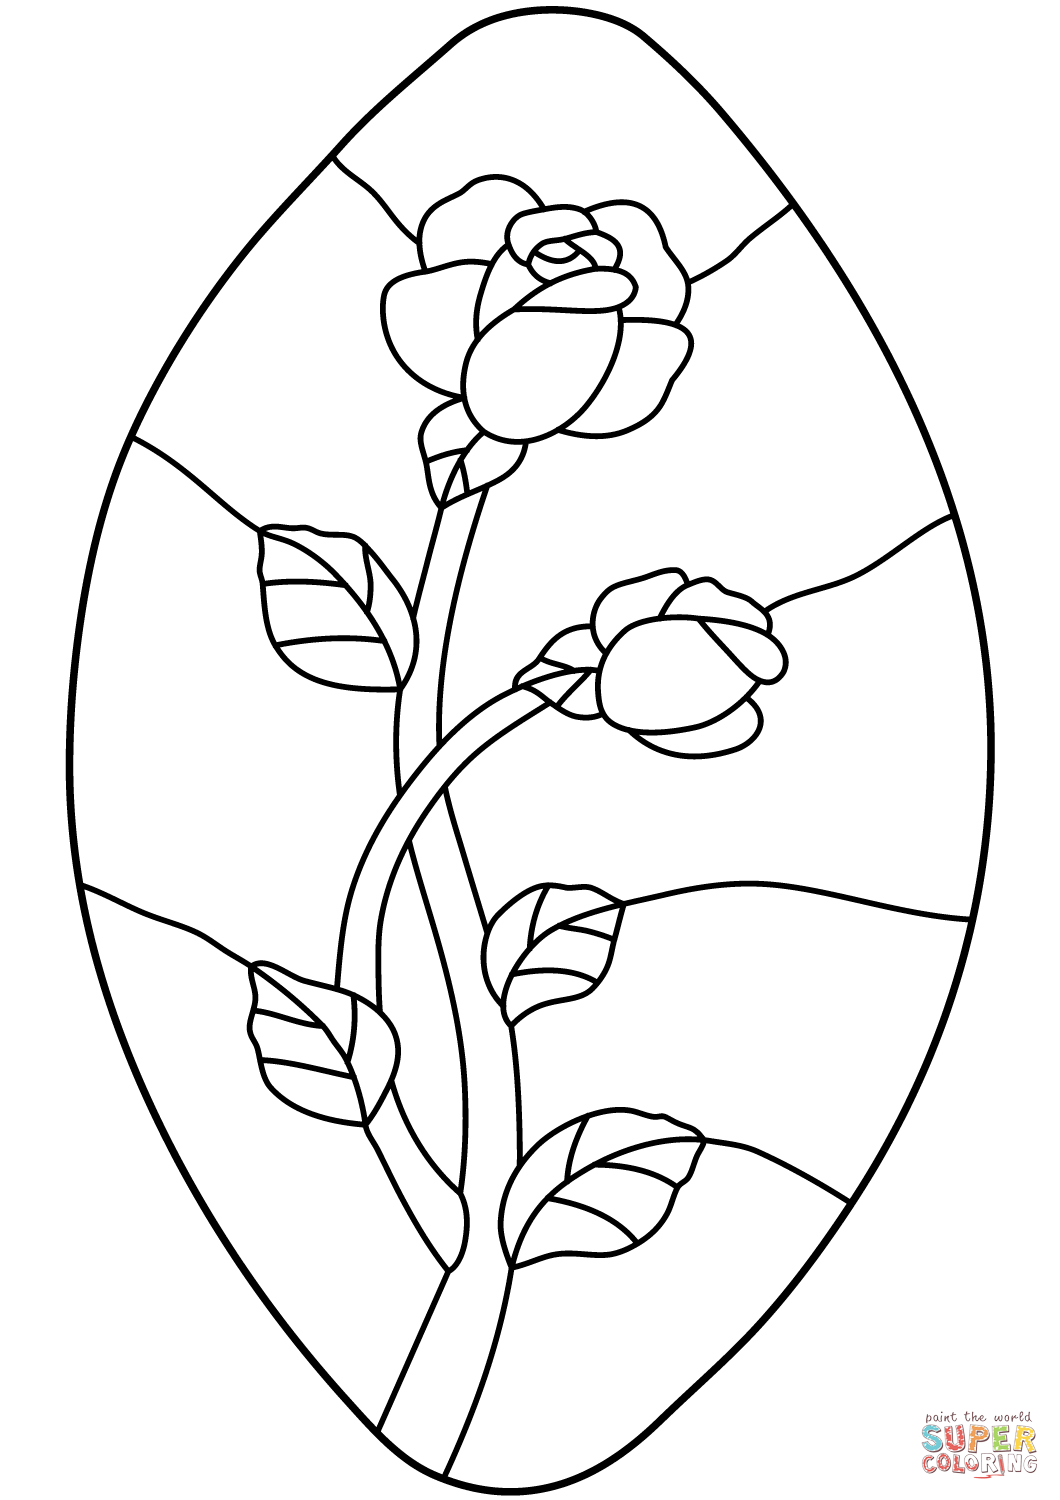 stained glass window coloring pages free printable stained glass patterns sketch coloring page stained coloring window pages glass